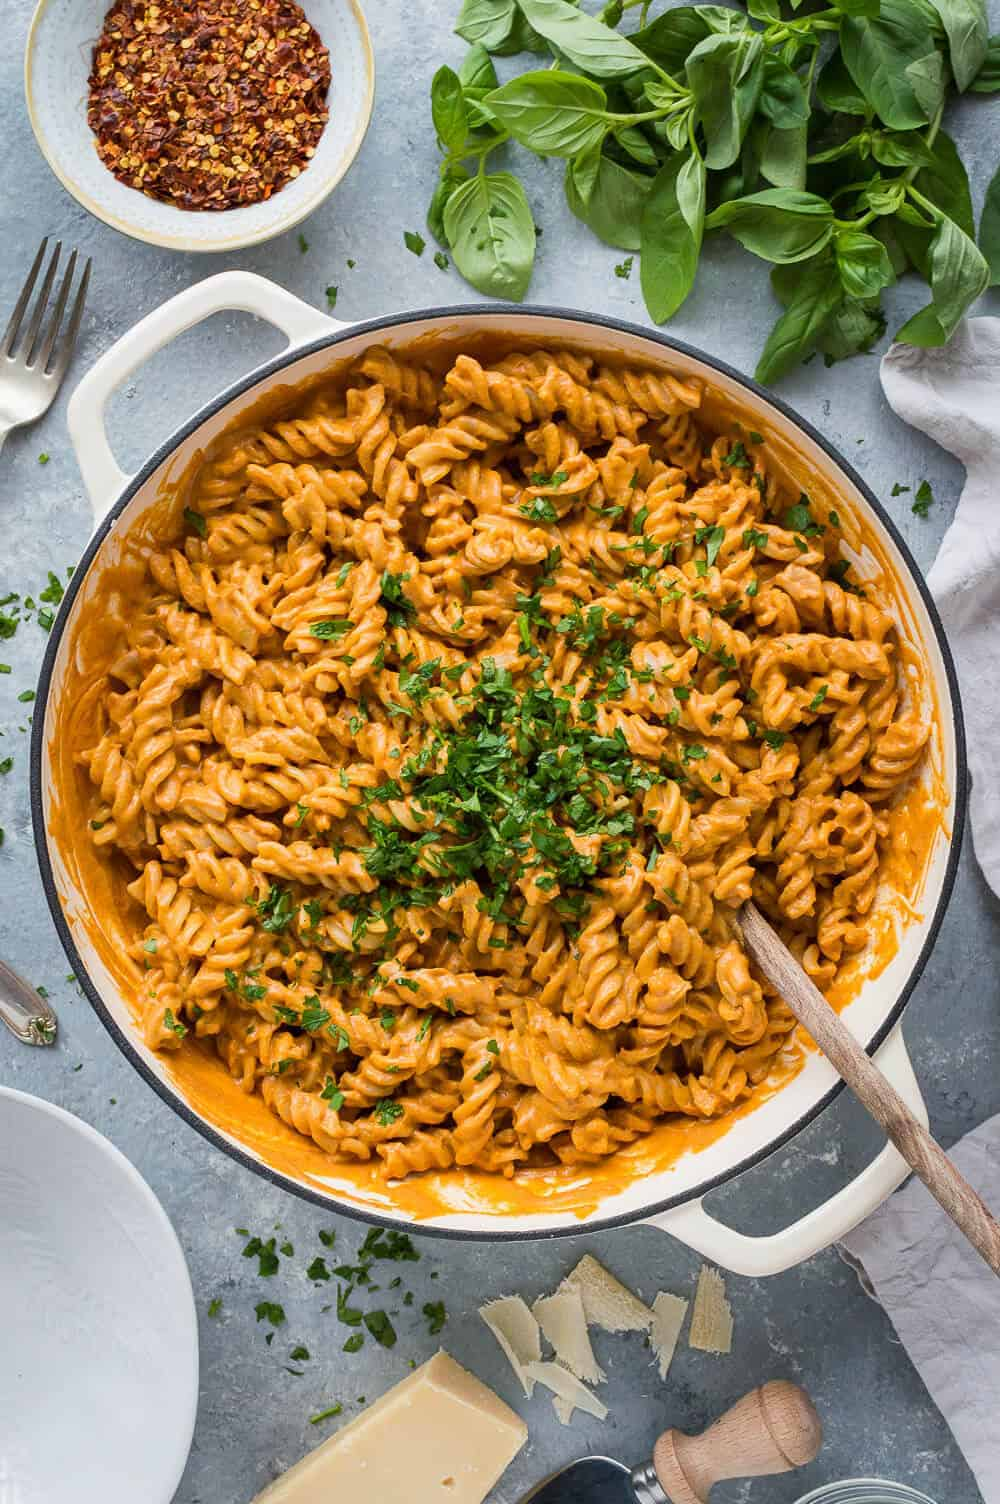 Creamy roasted red pepper tomato pasta – a rich and creamy roasted red pepper and tomato pasta sauce that is totally vegan thanks to blended cashews! #vegan #dairyfree #pasta